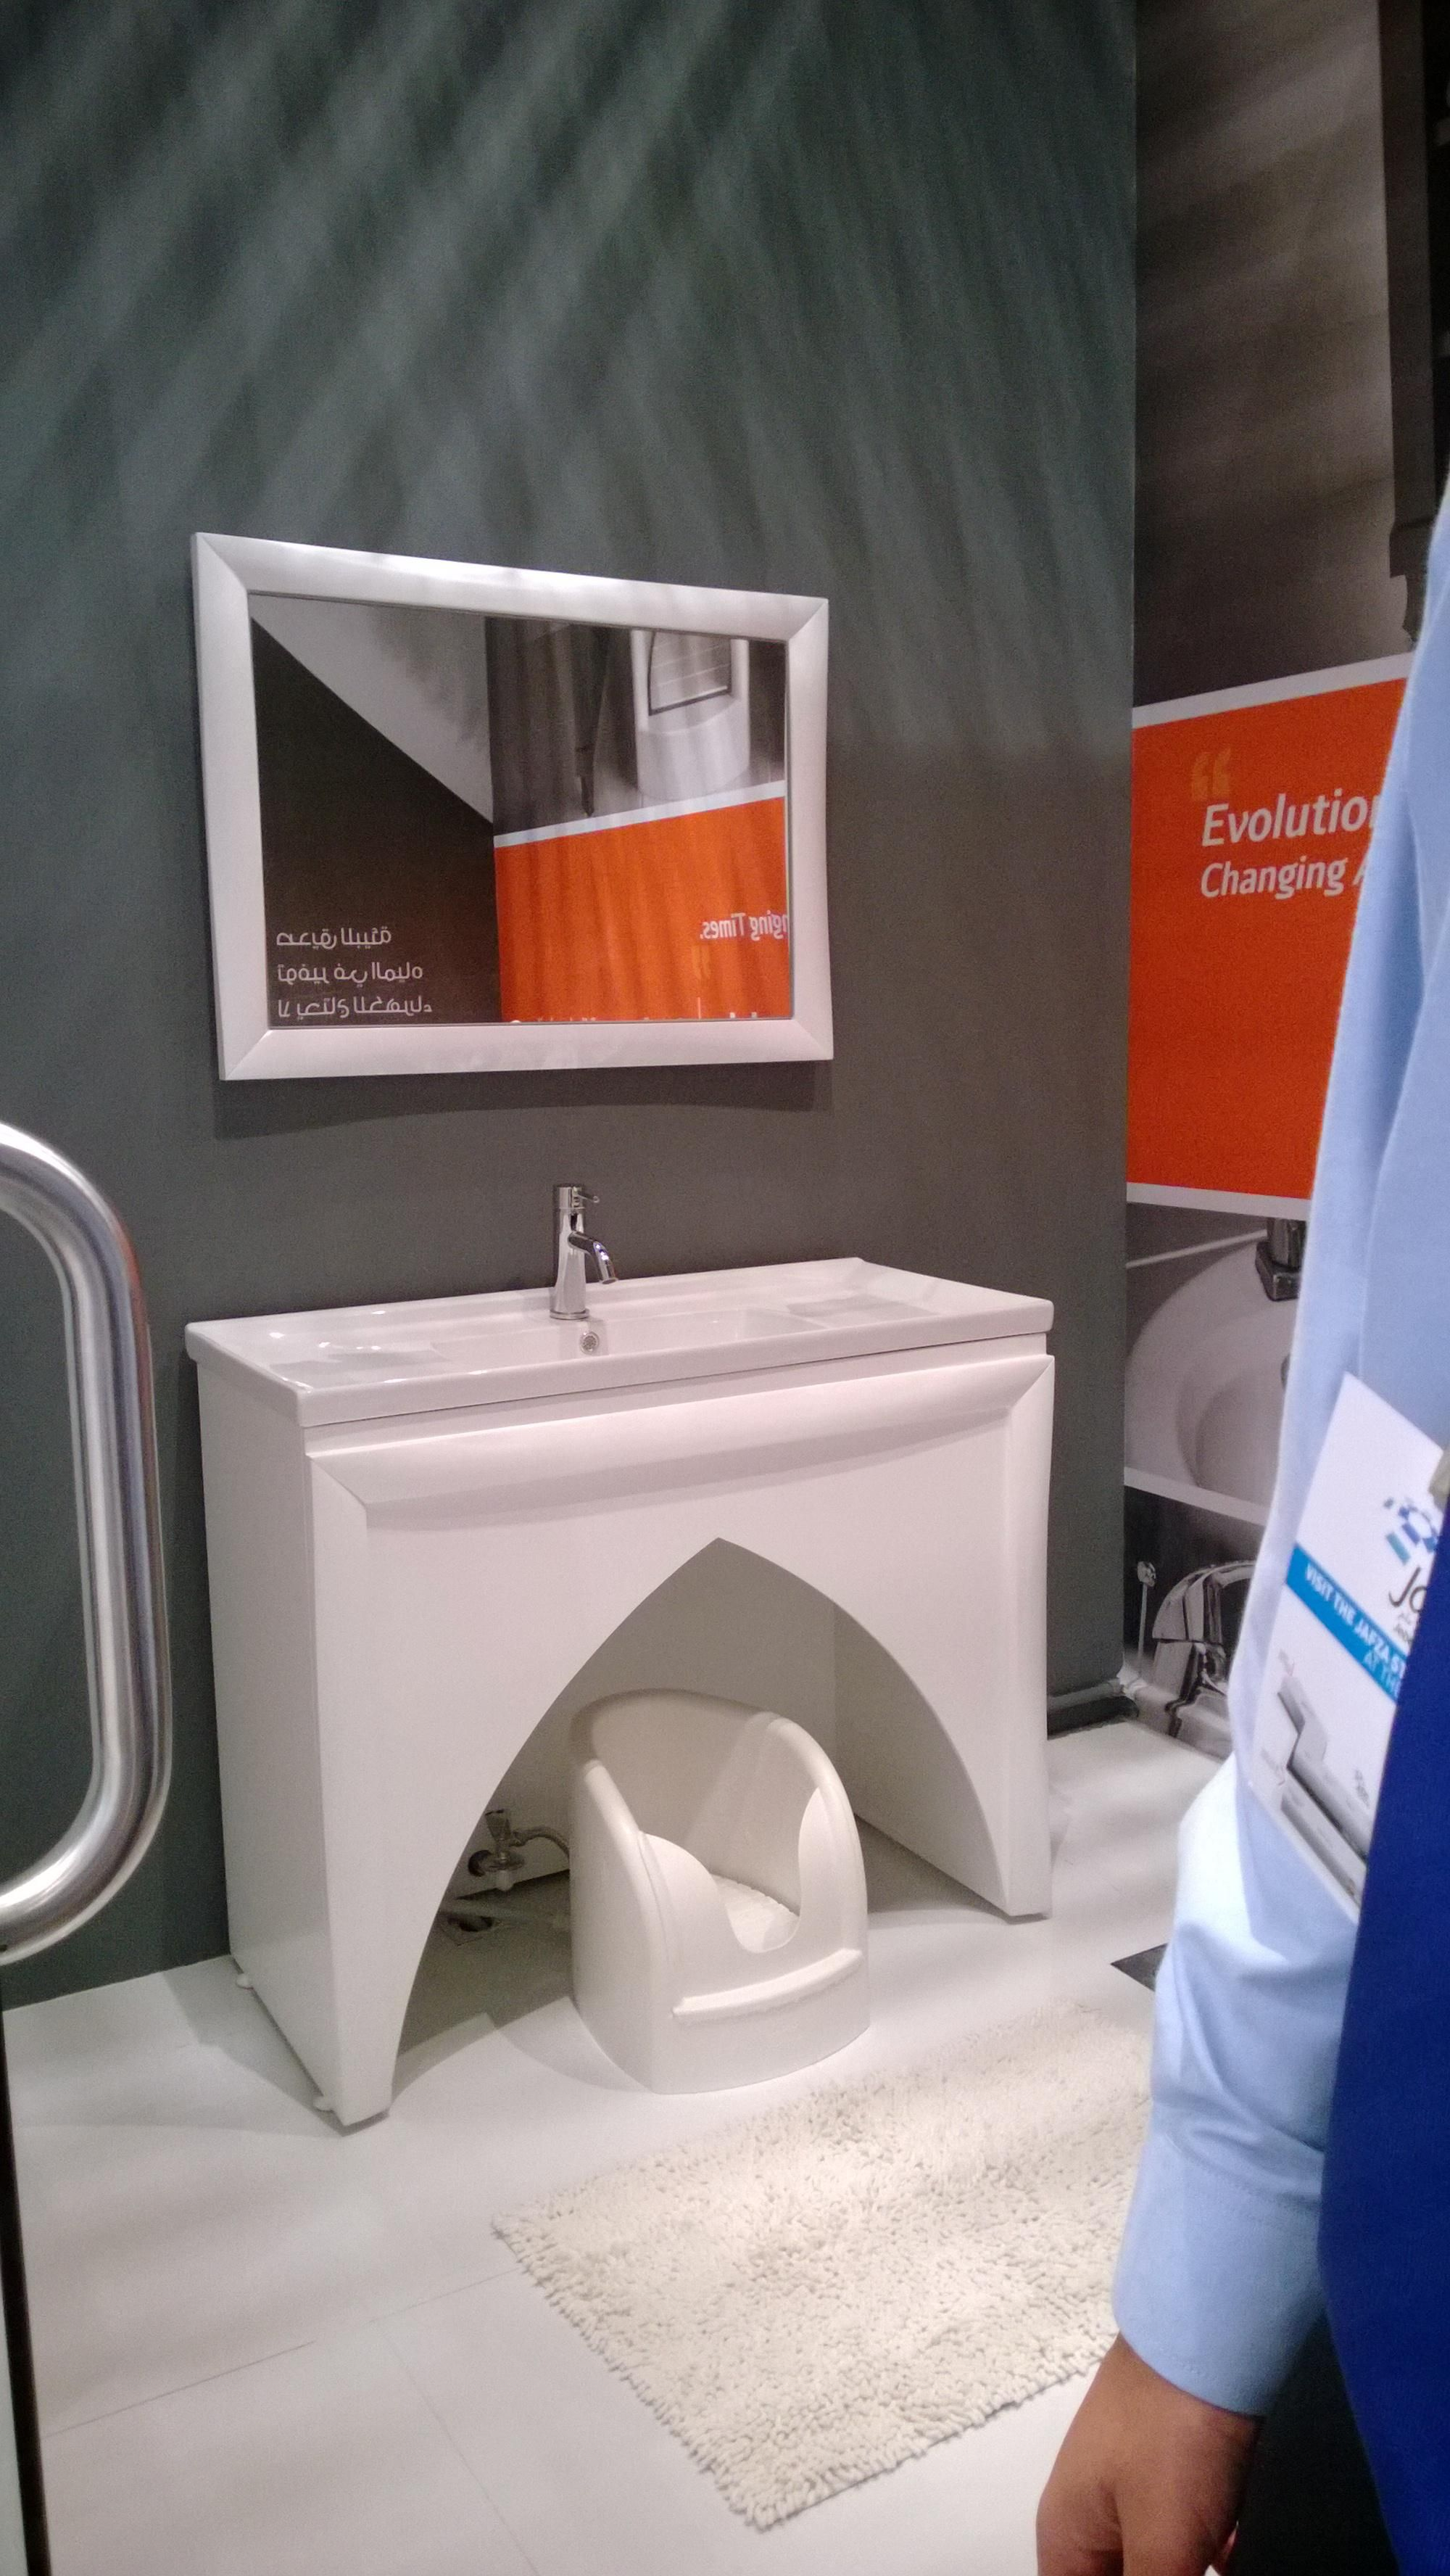 Wudu Foot Washer And Cabinet At The Big 5 Event Dubai In